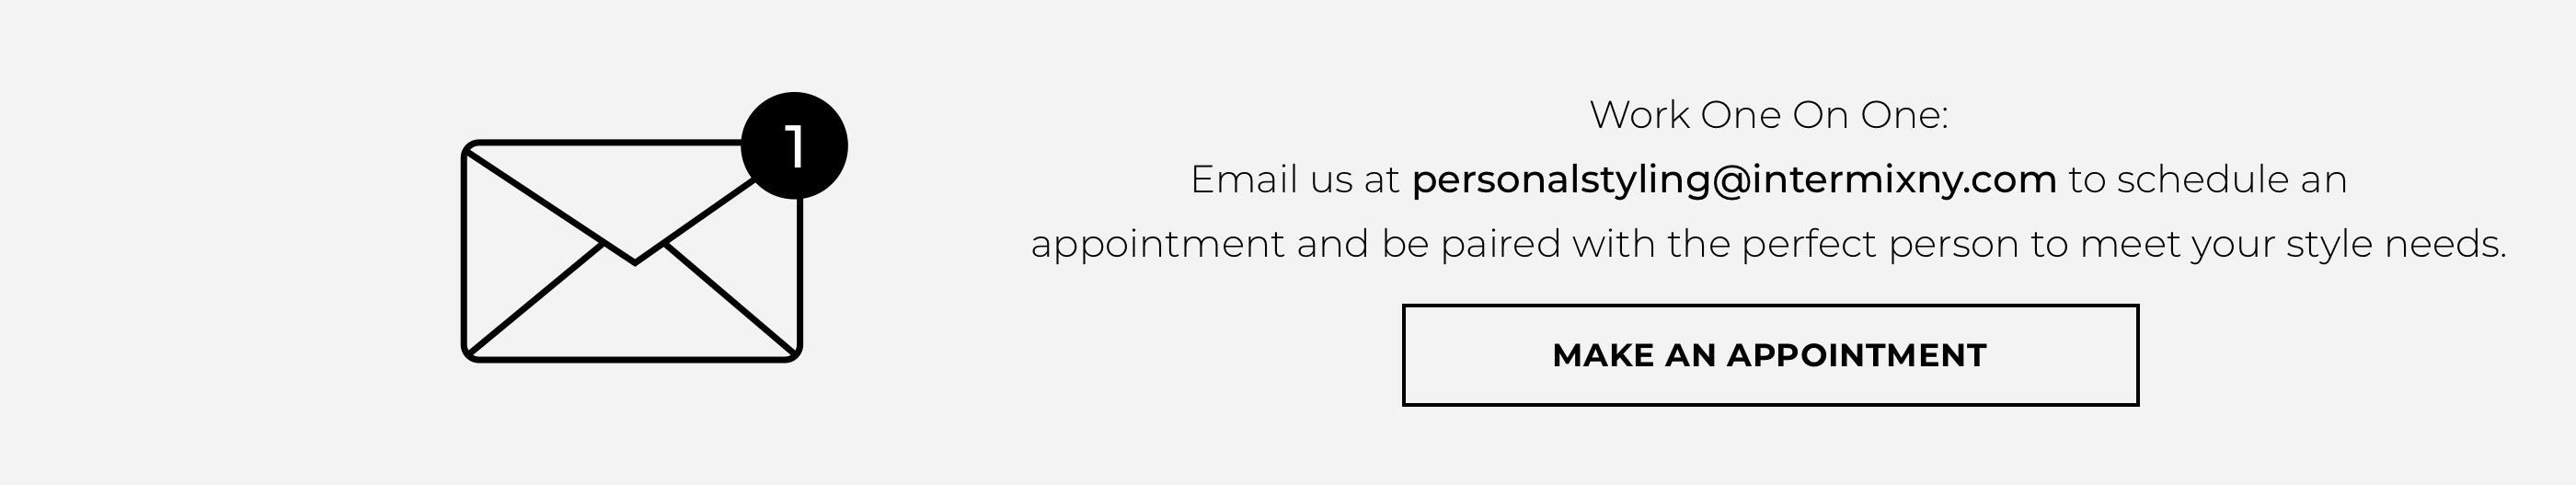 Email us to schedule an appointment and be paired with the perfect person to meet your style needs.